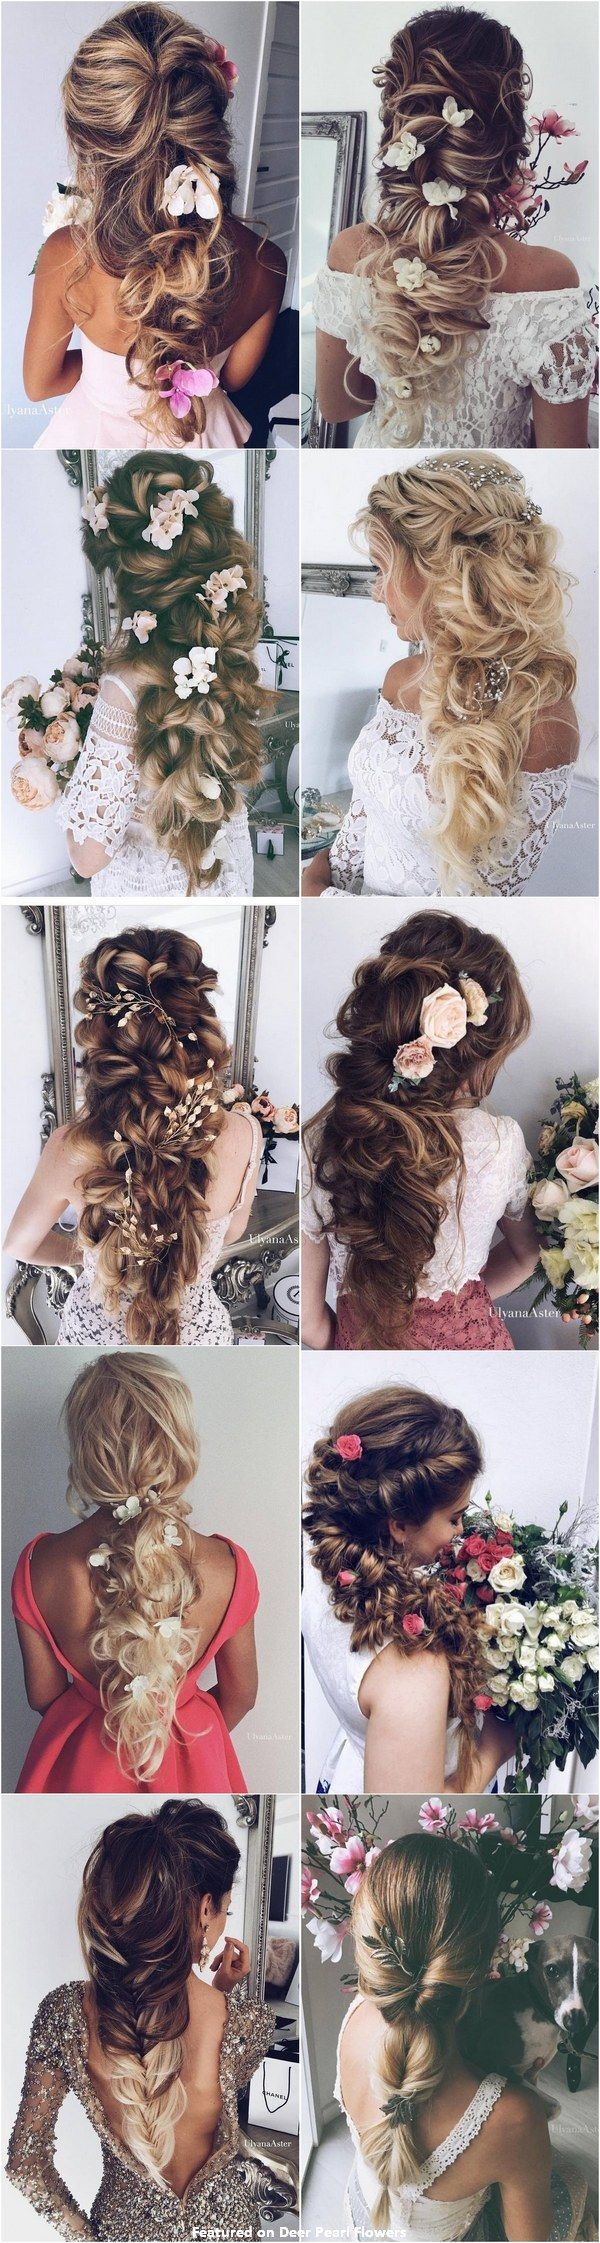 new romantic long bridal wedding hairstyles to try weddings